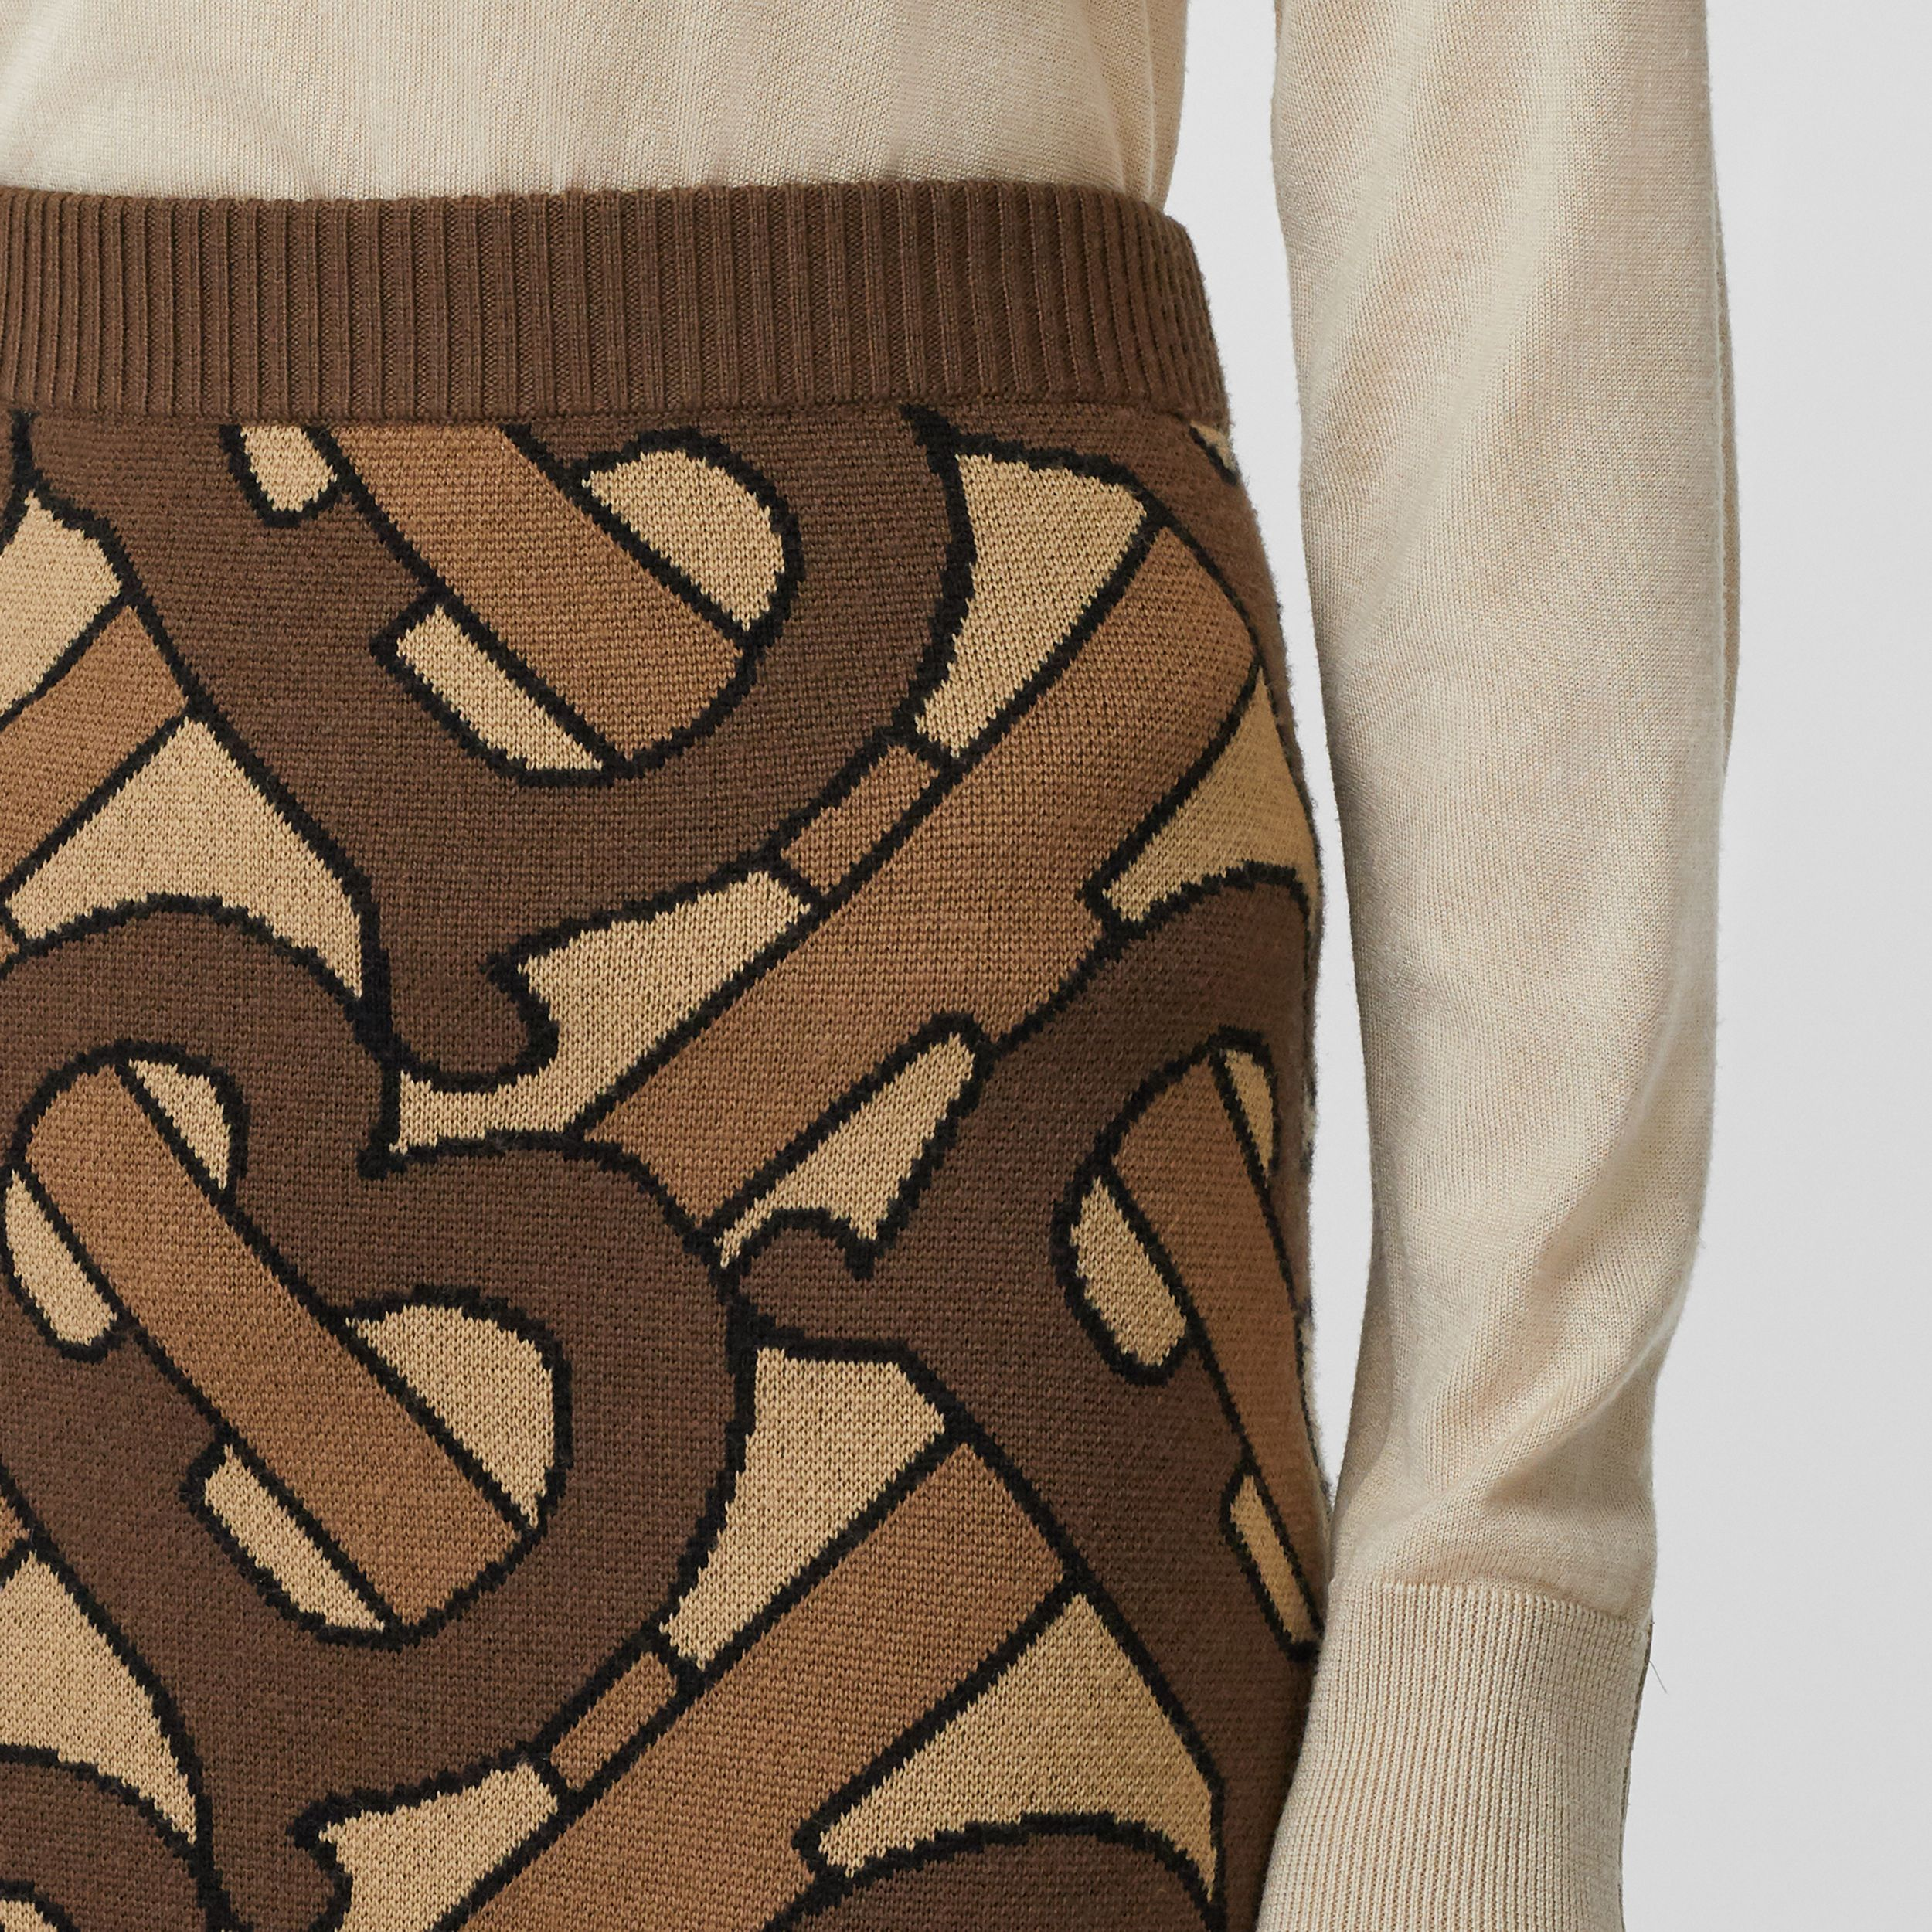 Monogram Intarsia Wool Pencil Skirt in Bridle Brown - Women | Burberry - 2